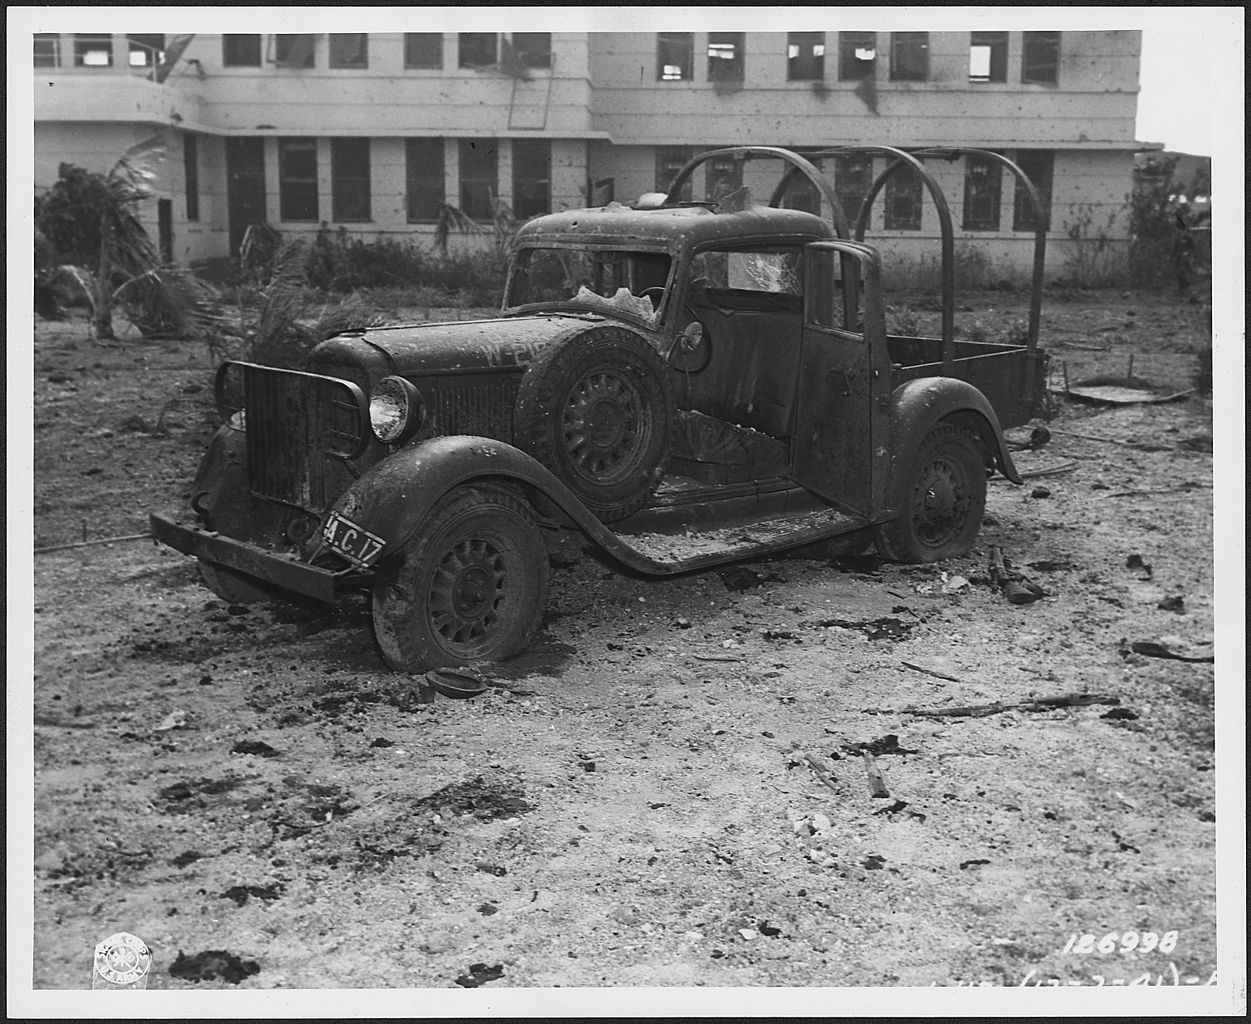 Photograph of a machine-gunned army truck at Hickam Field, Hawaii, after the attack on Pearl Harbor.